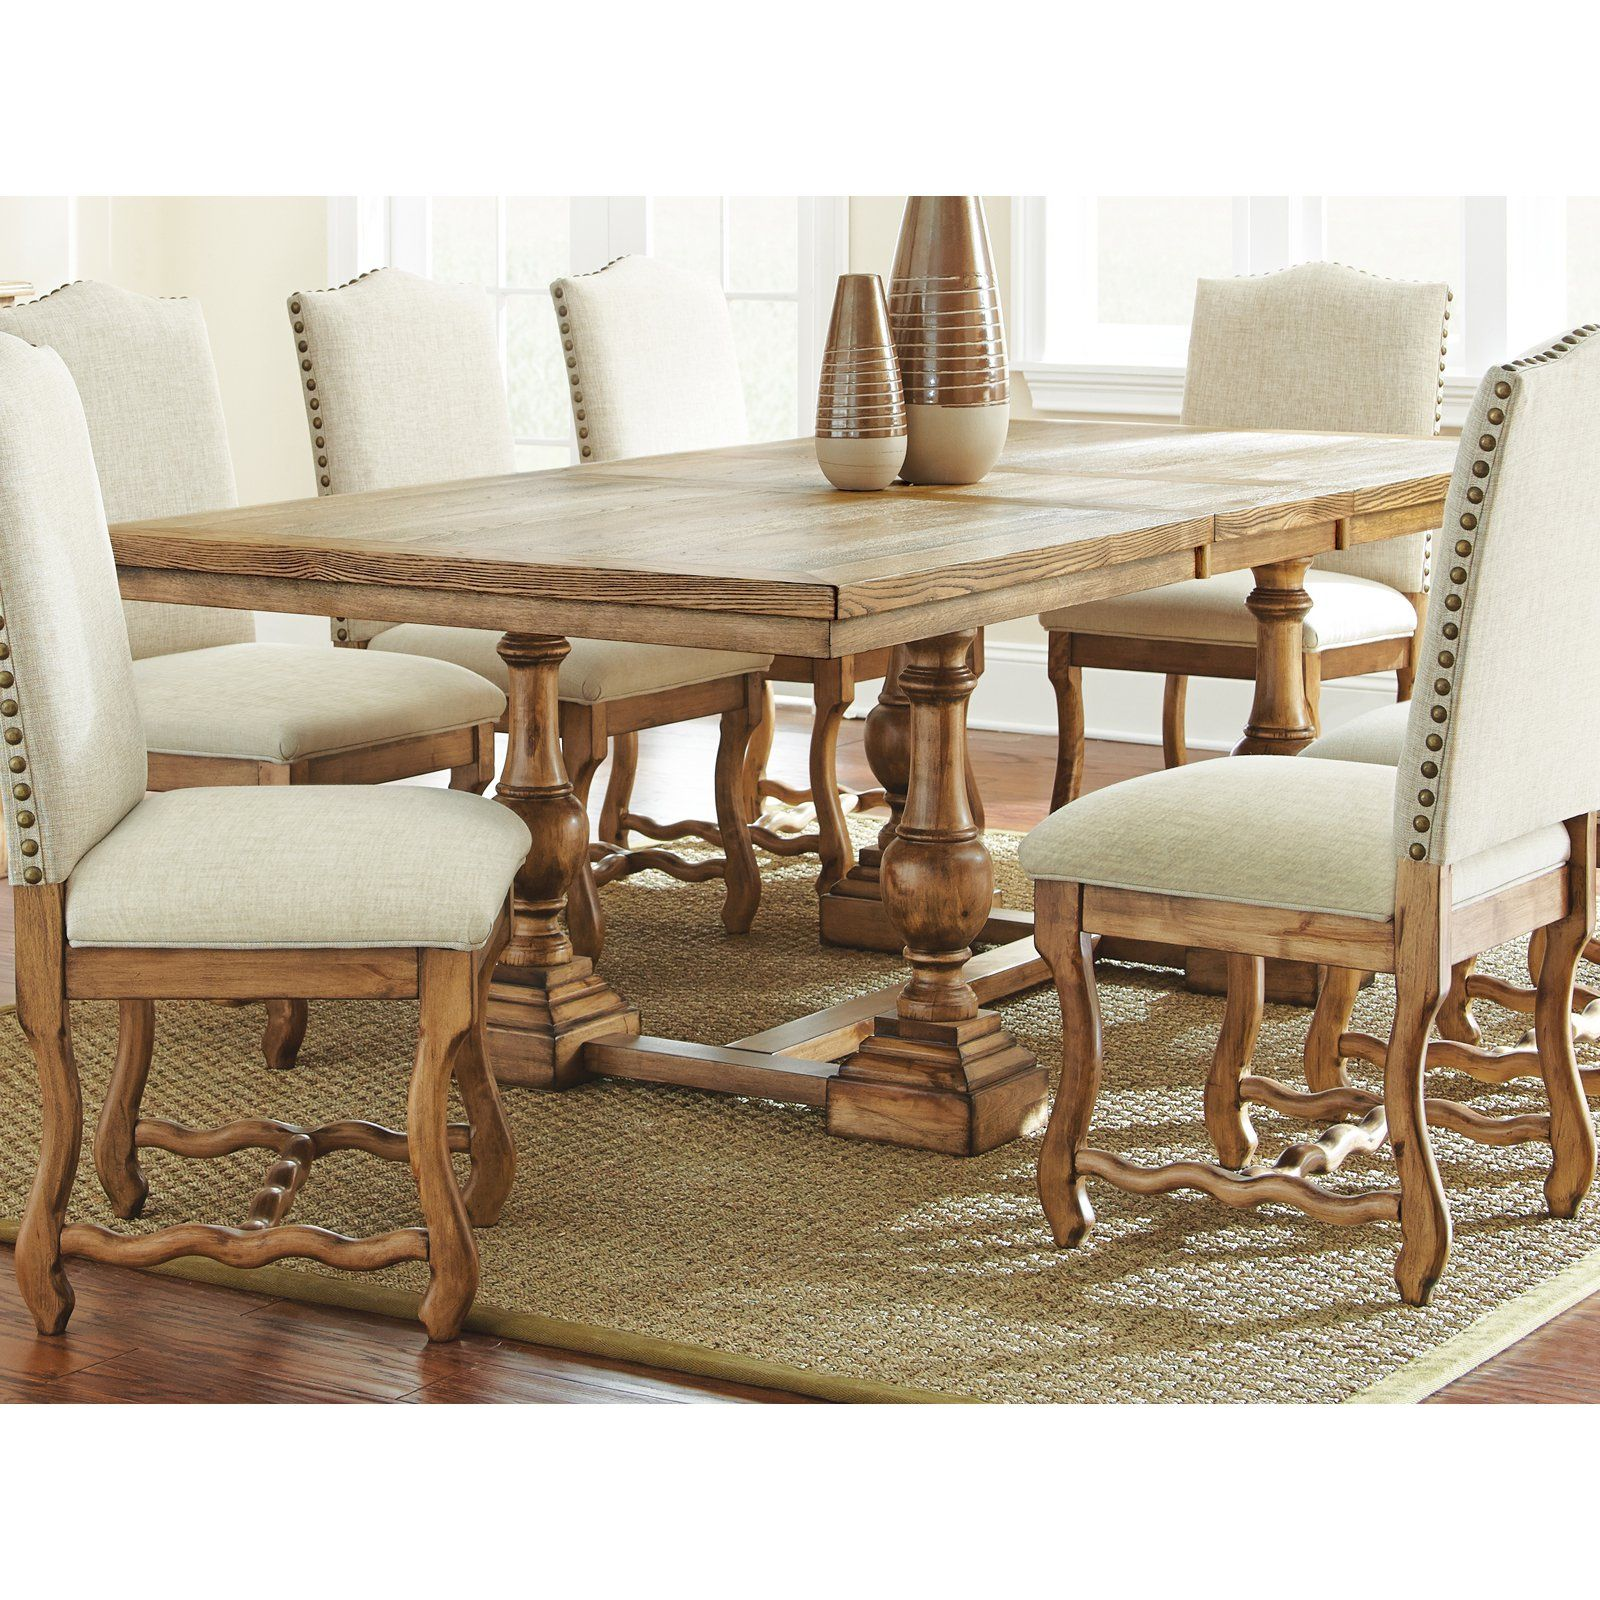 Steve Silver Plymouth Dining Table Oiled Oak Bring Bold Style Home For Dinner With